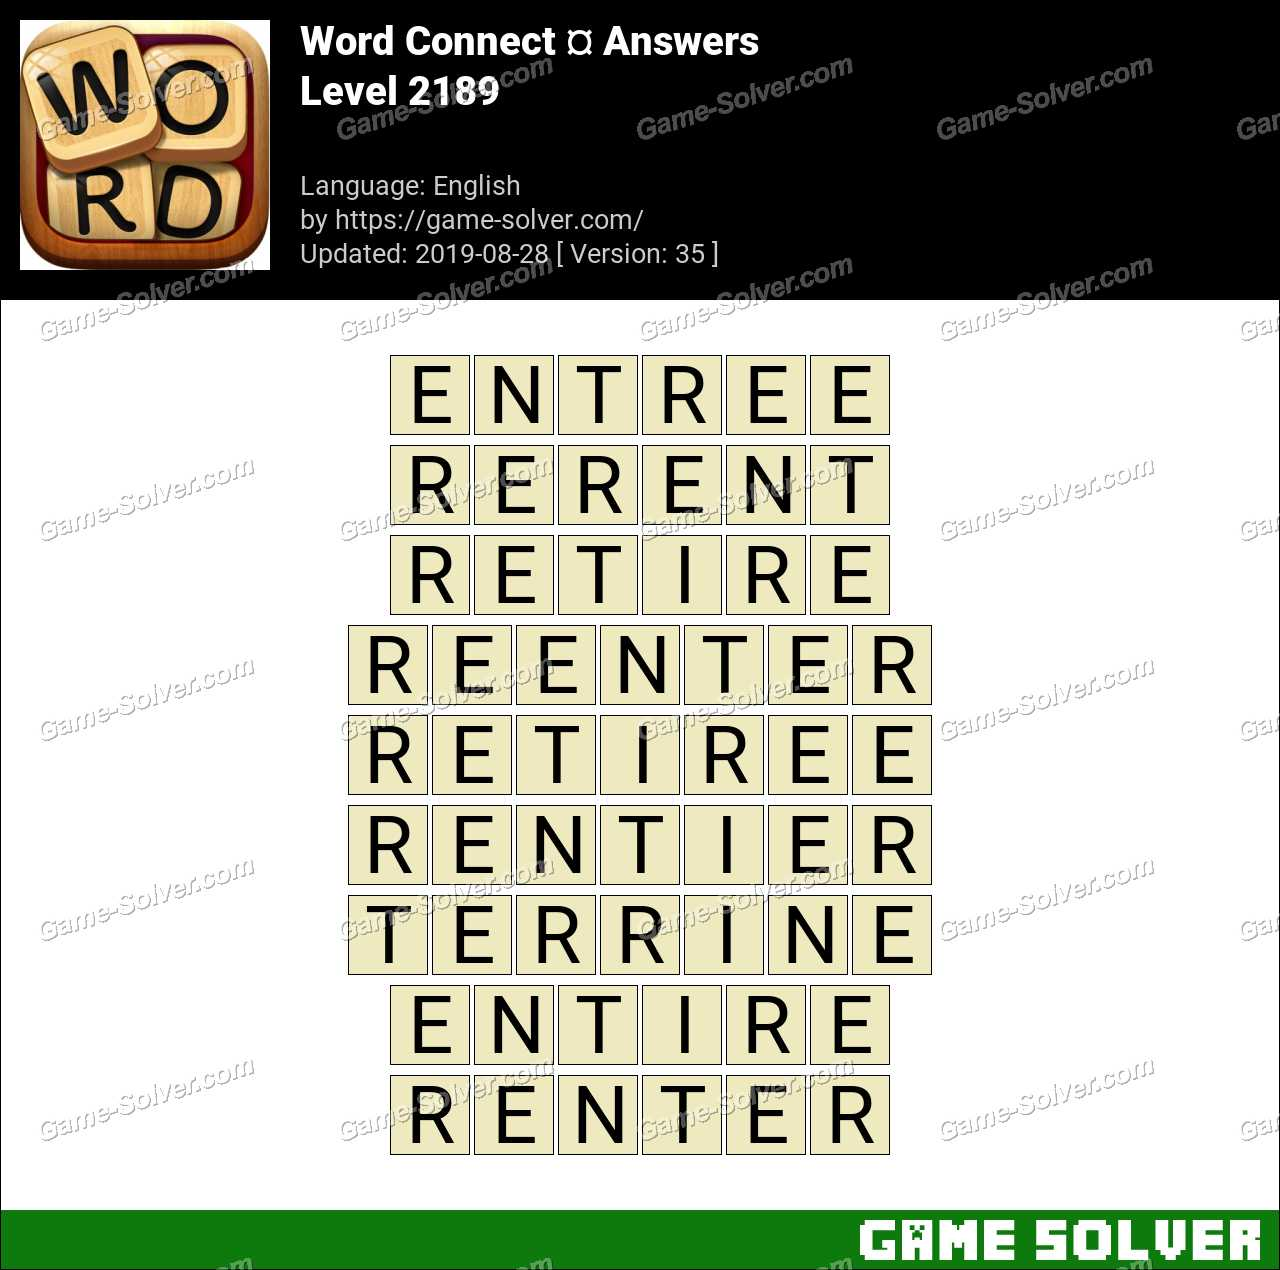 Word Connect Level 2189 Answers